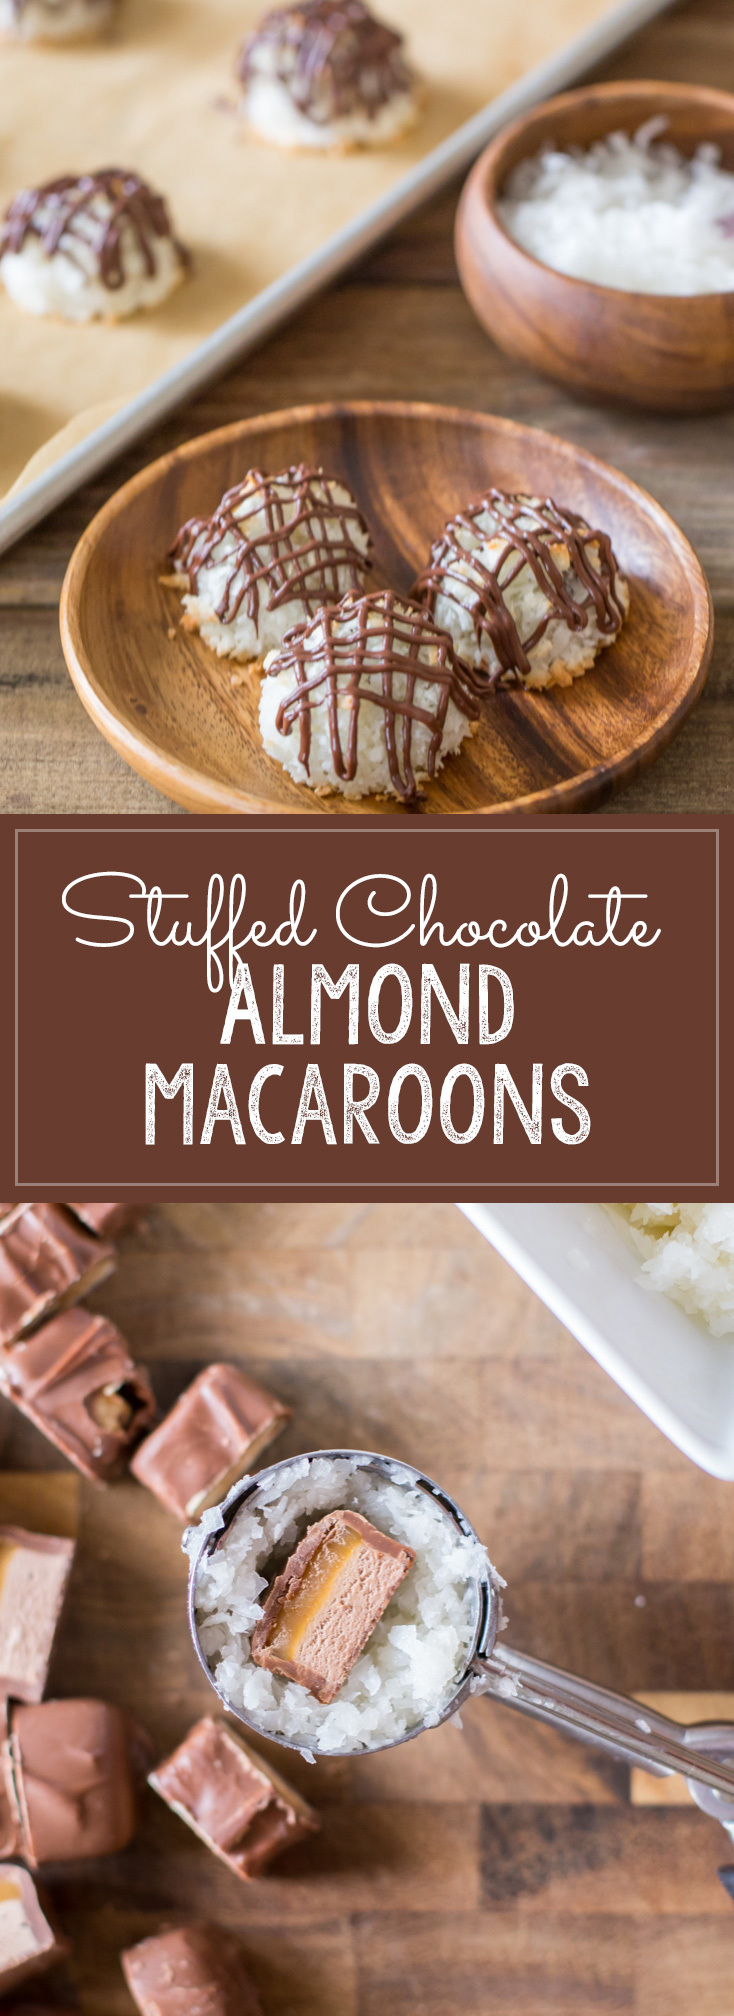 Stuffed Chocolate Almond Macaroons - Coconut macaroons flavored with vanilla and almond, stuffed with a mini sized candy bar and drizzled with chocolate!